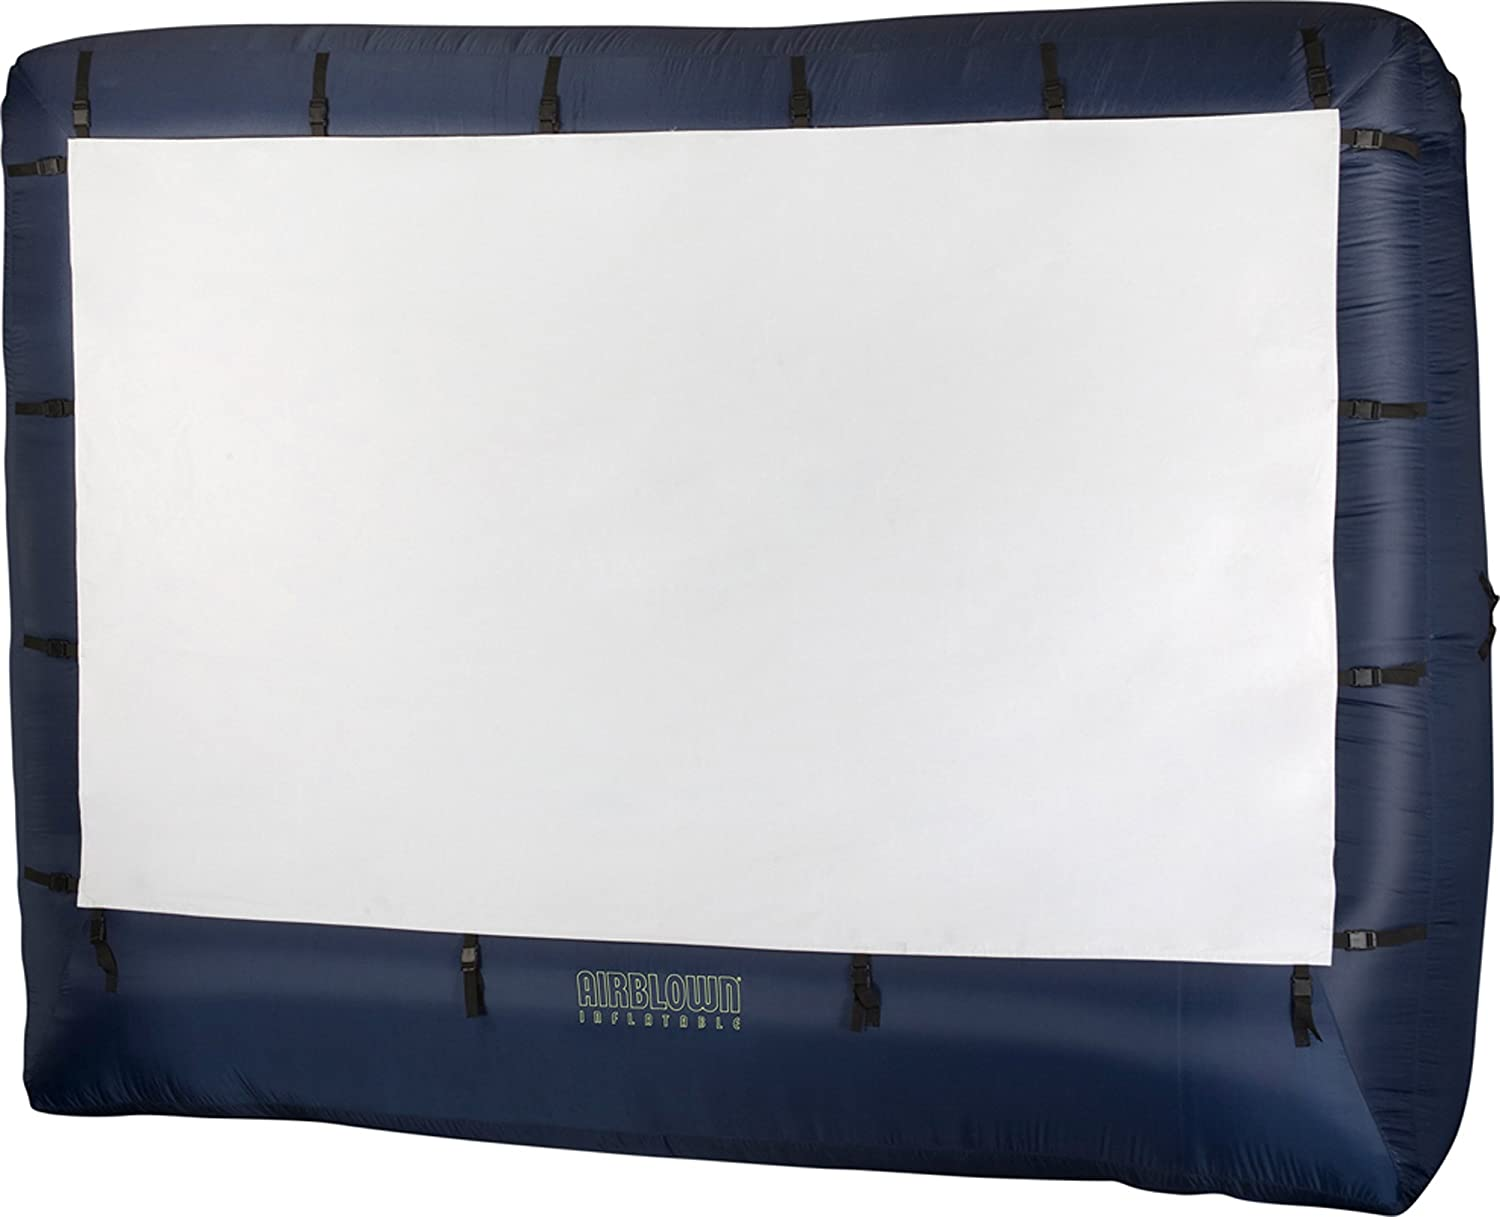 amazon com airblown 39121 32 123 x 77 inch inflatable movie